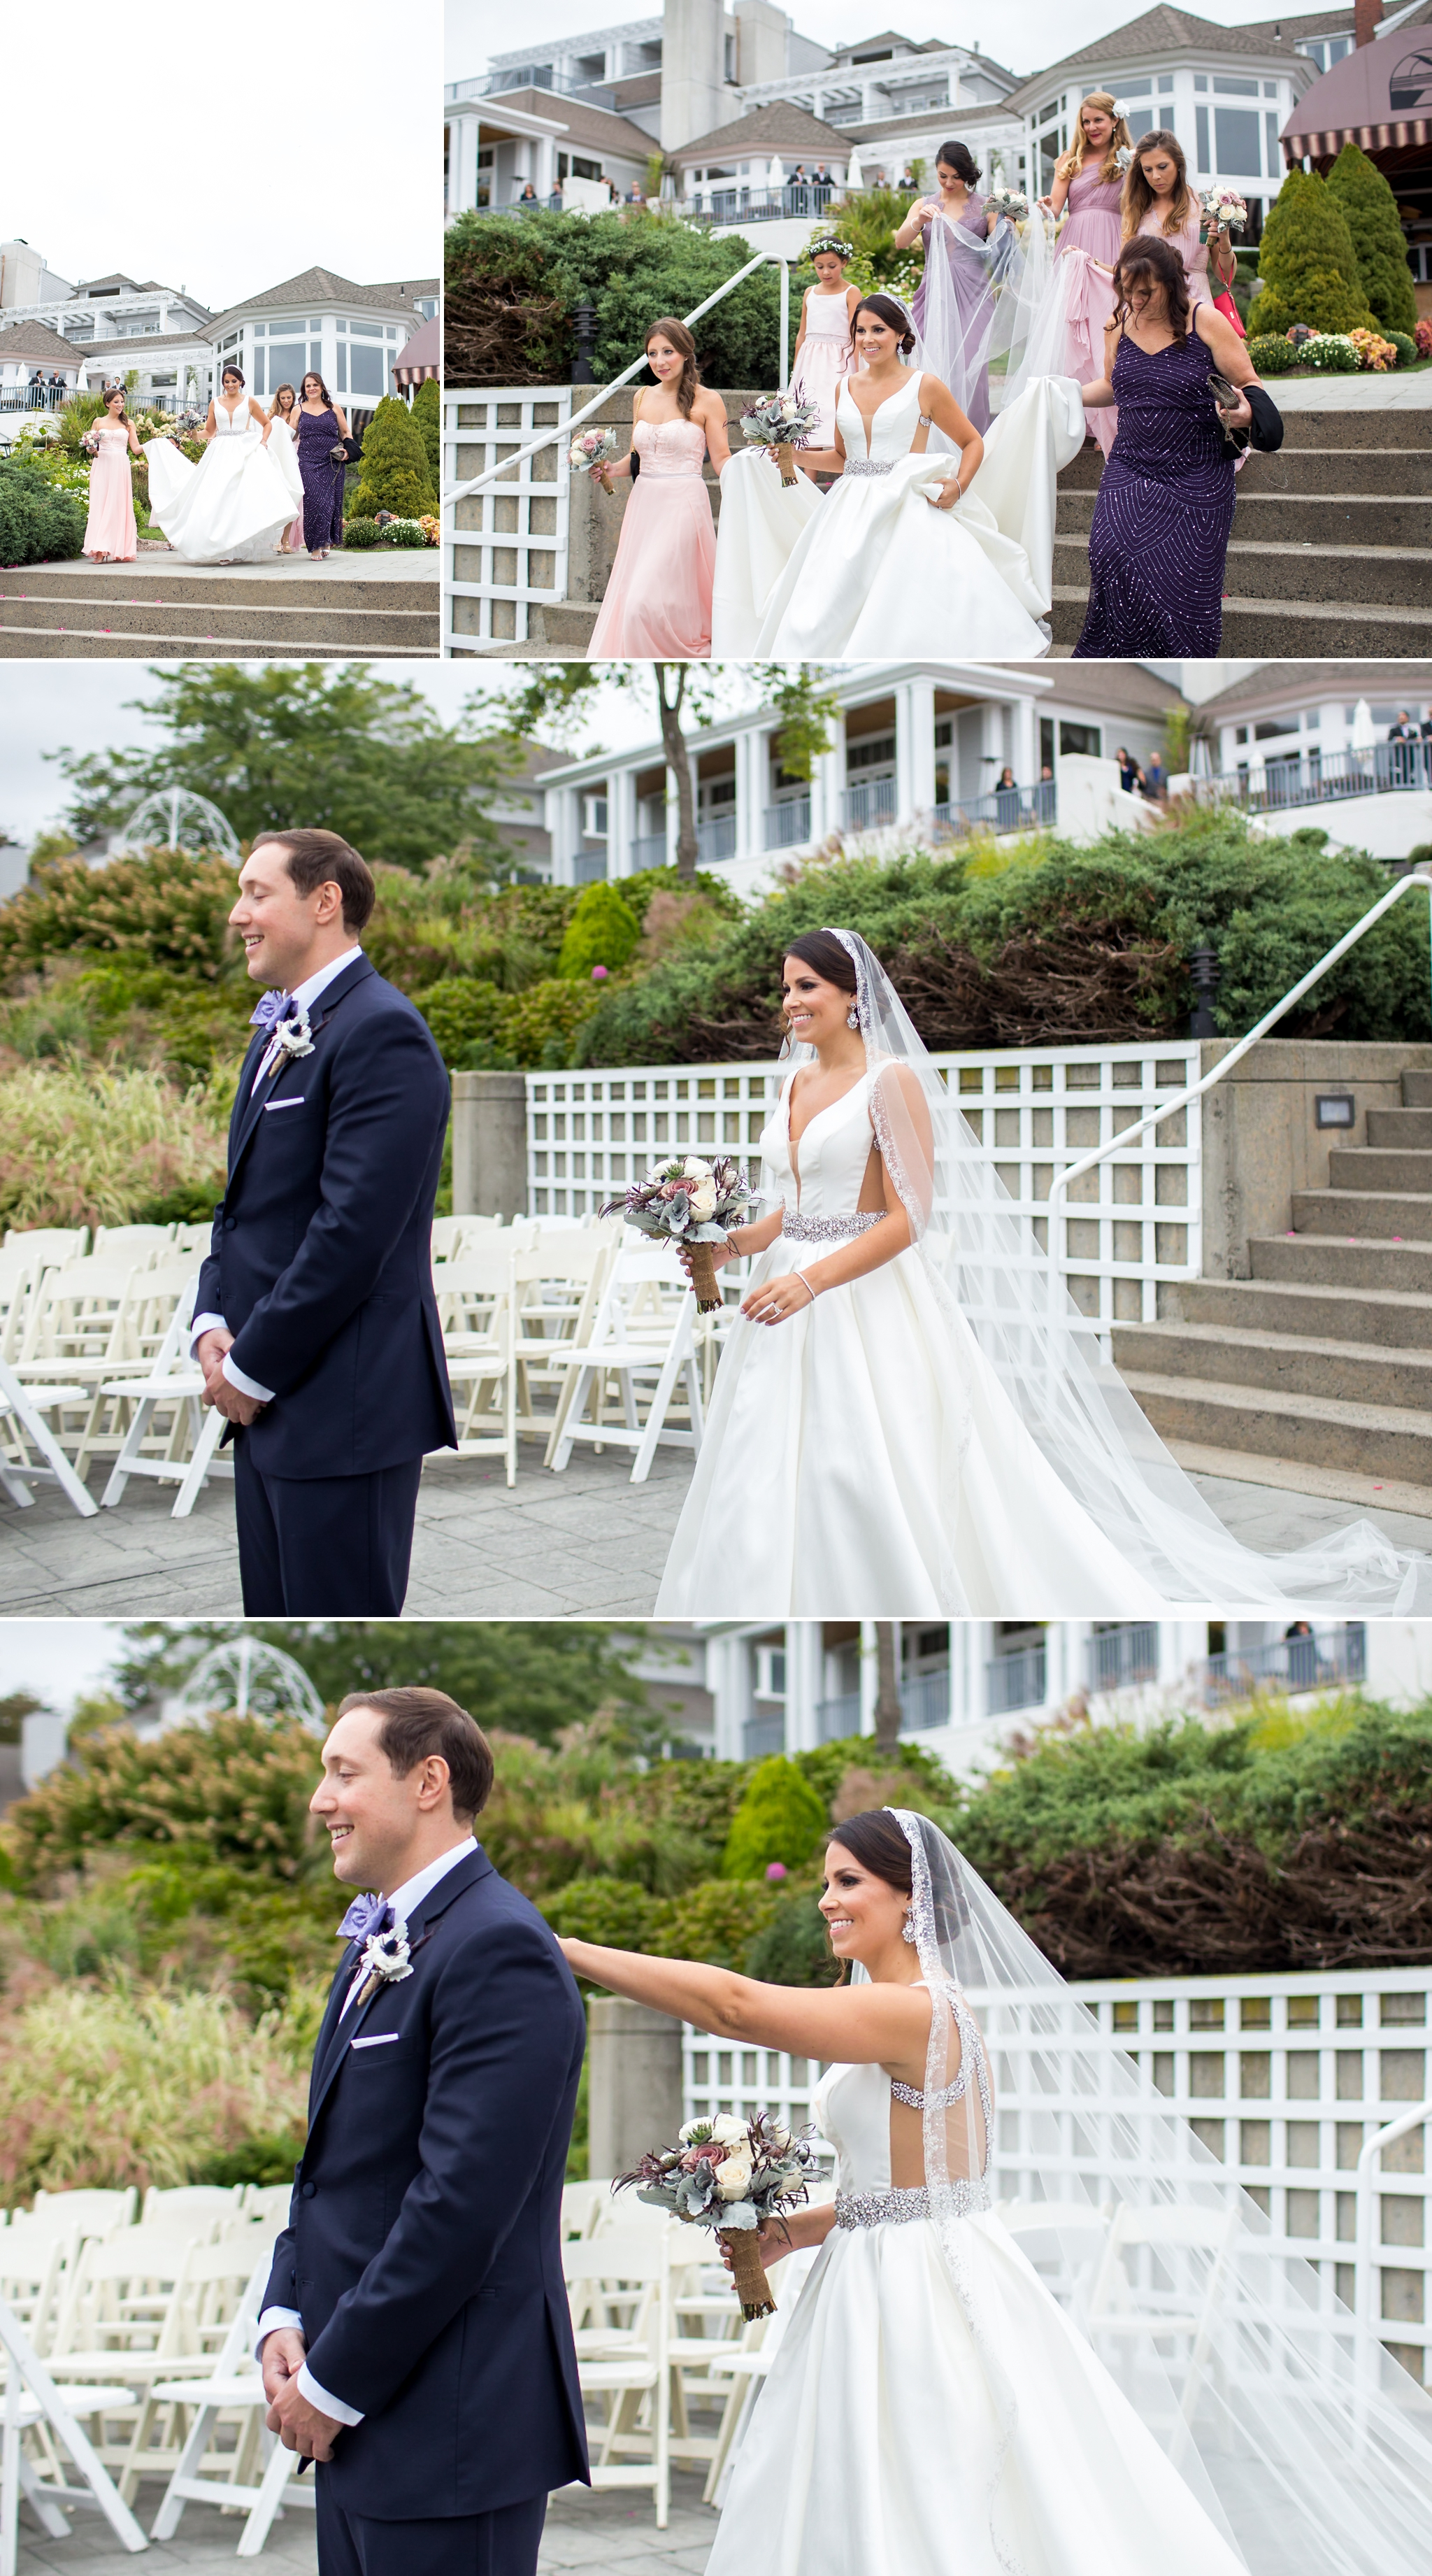 Westbrook, CT Wedding at The Water's Edge Resort + Spa | CT, NYC, New England + Destination Luxury Wedding + Engagement Photographer